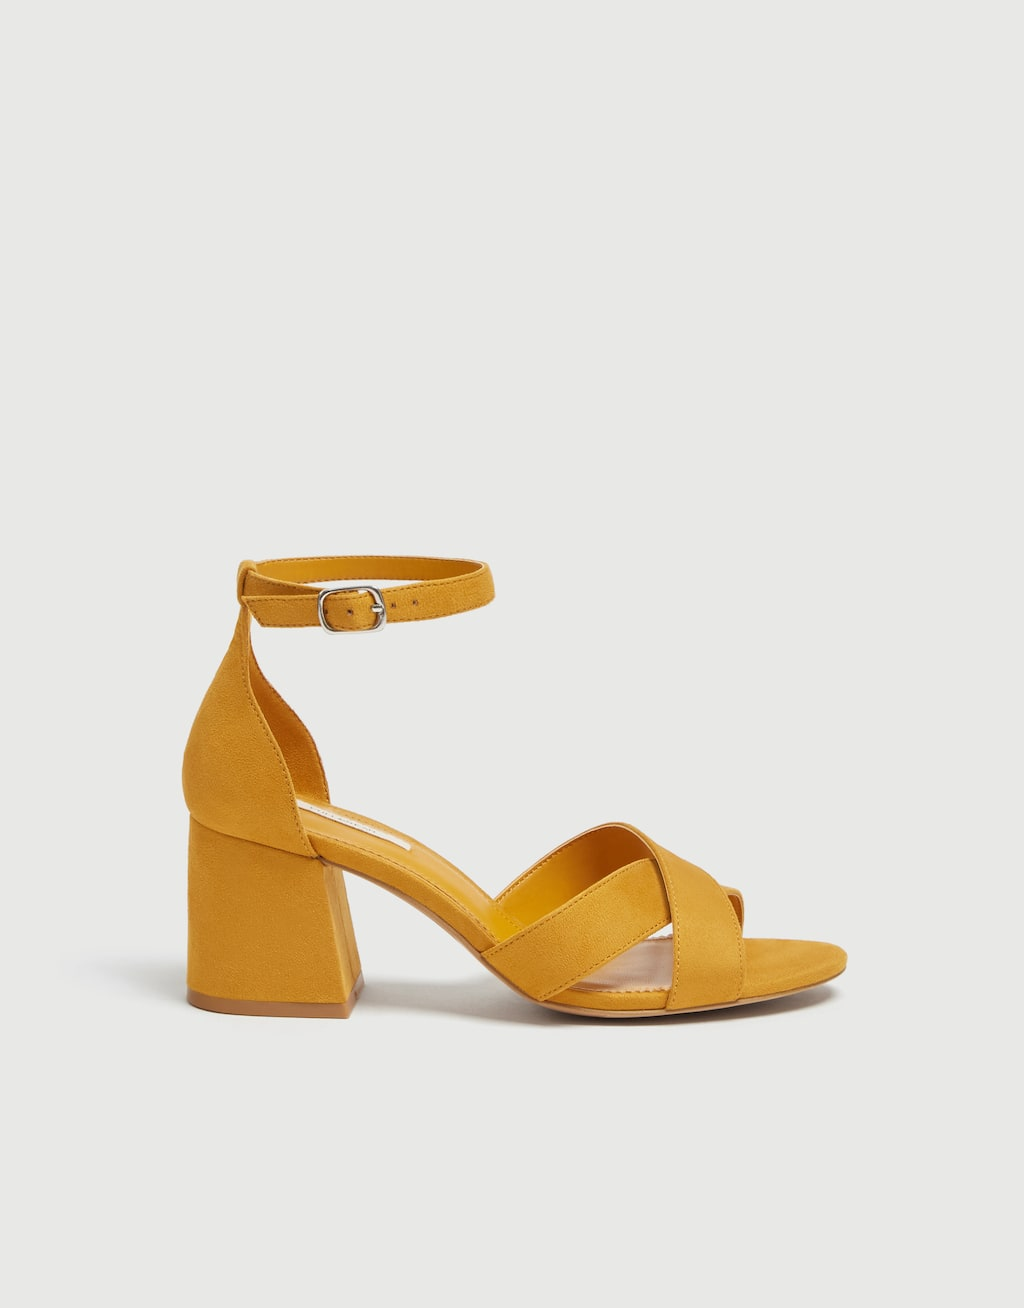 Sandales Basic Jaune Moutarde by Pull & Bear